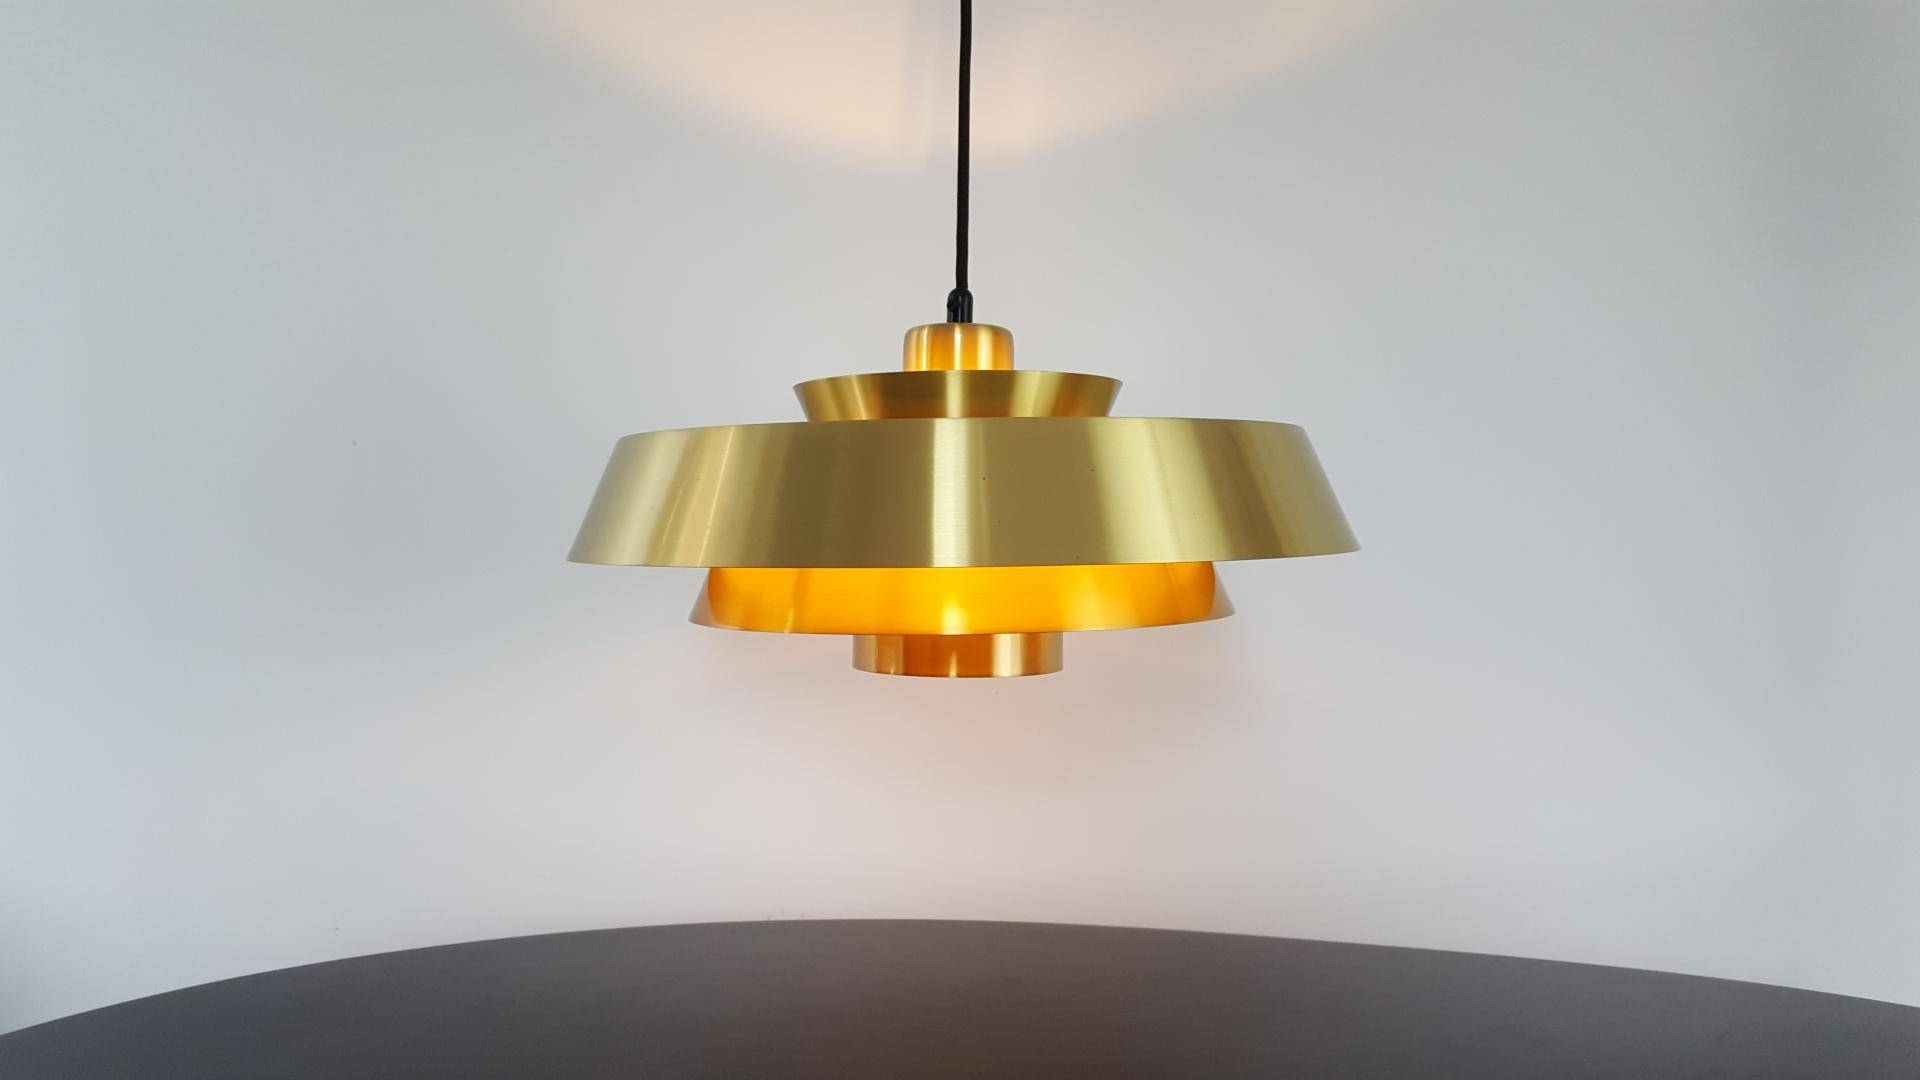 Nova Brass Pendant Lightjo Hammerborg For Fog & Mørup Denmark inside 1960S Pendant Lighting (Image 7 of 15)